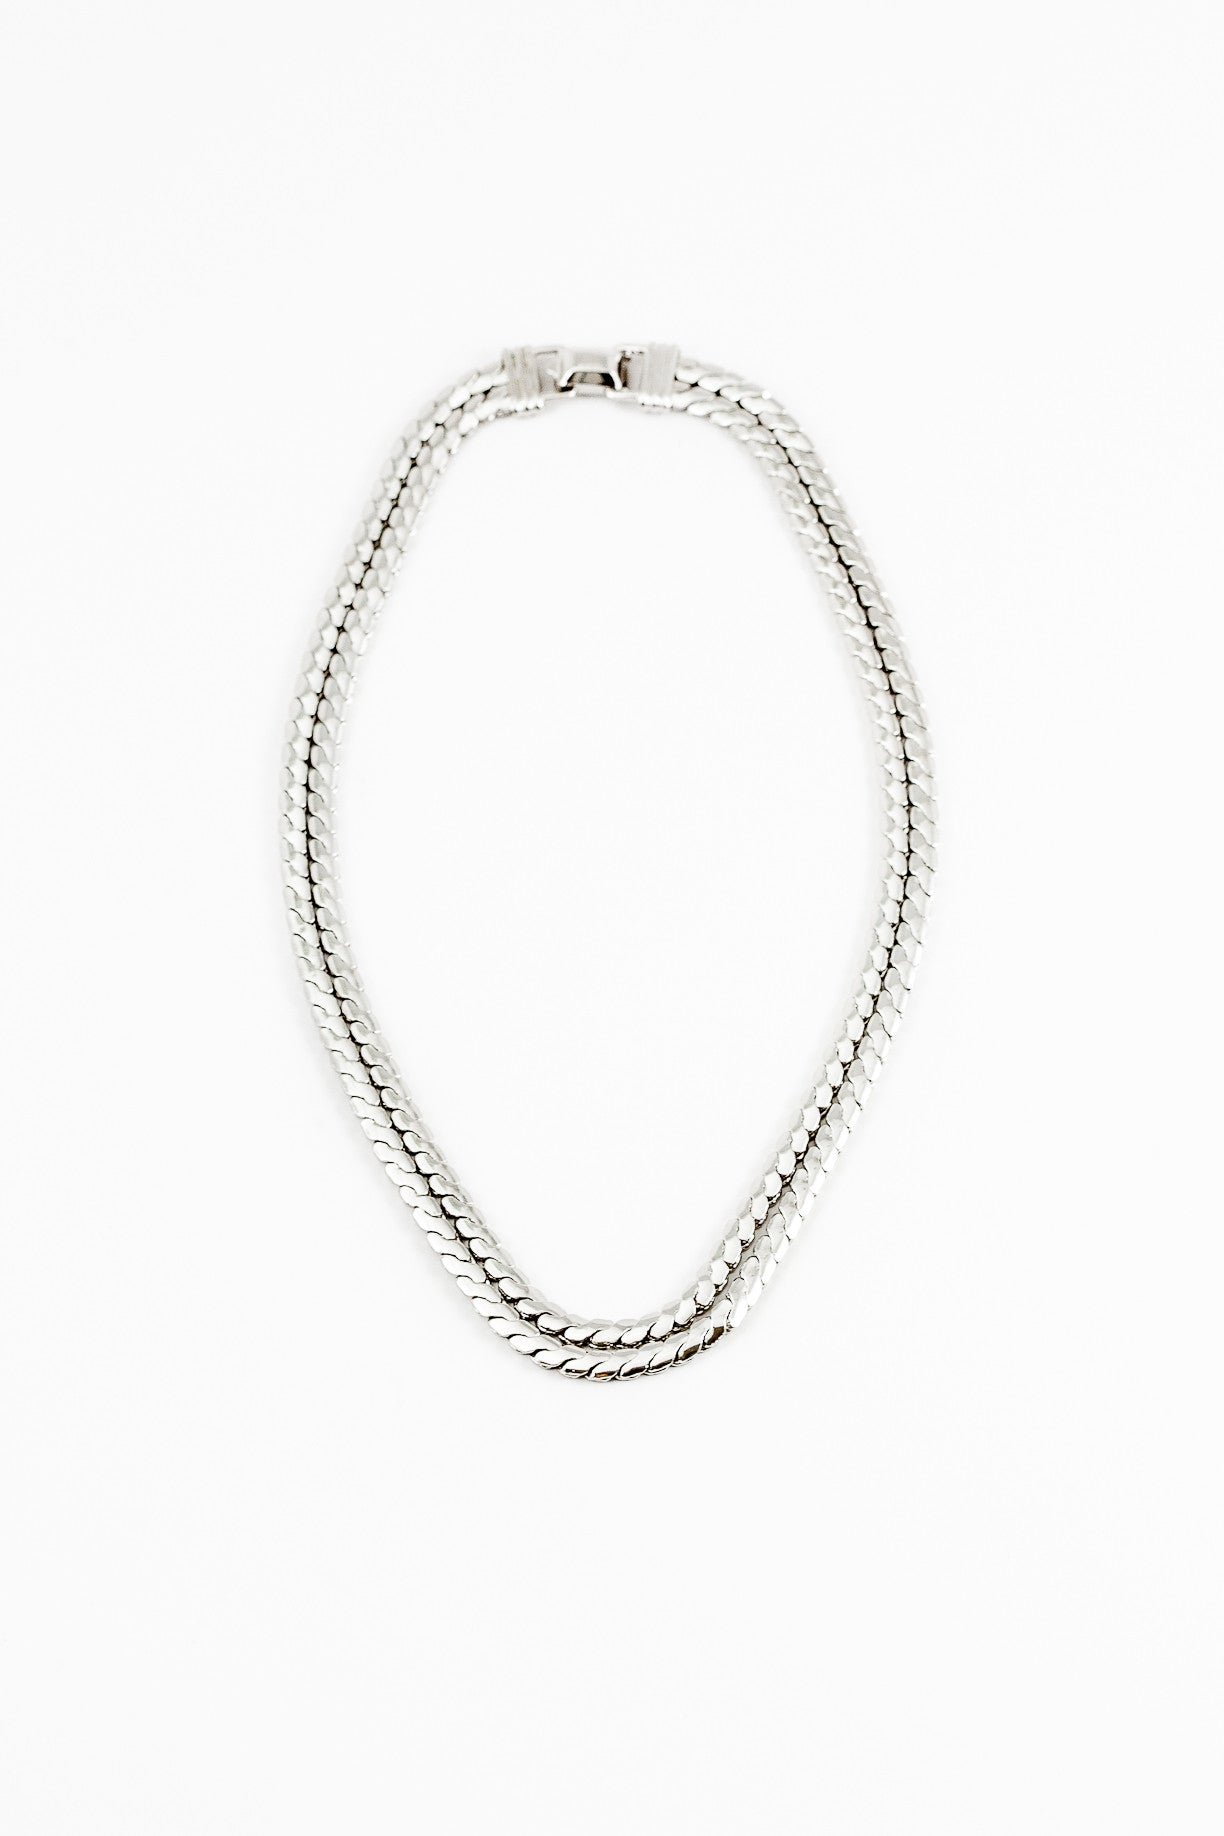 70's__Coro__Silver Flat Chain Necklace